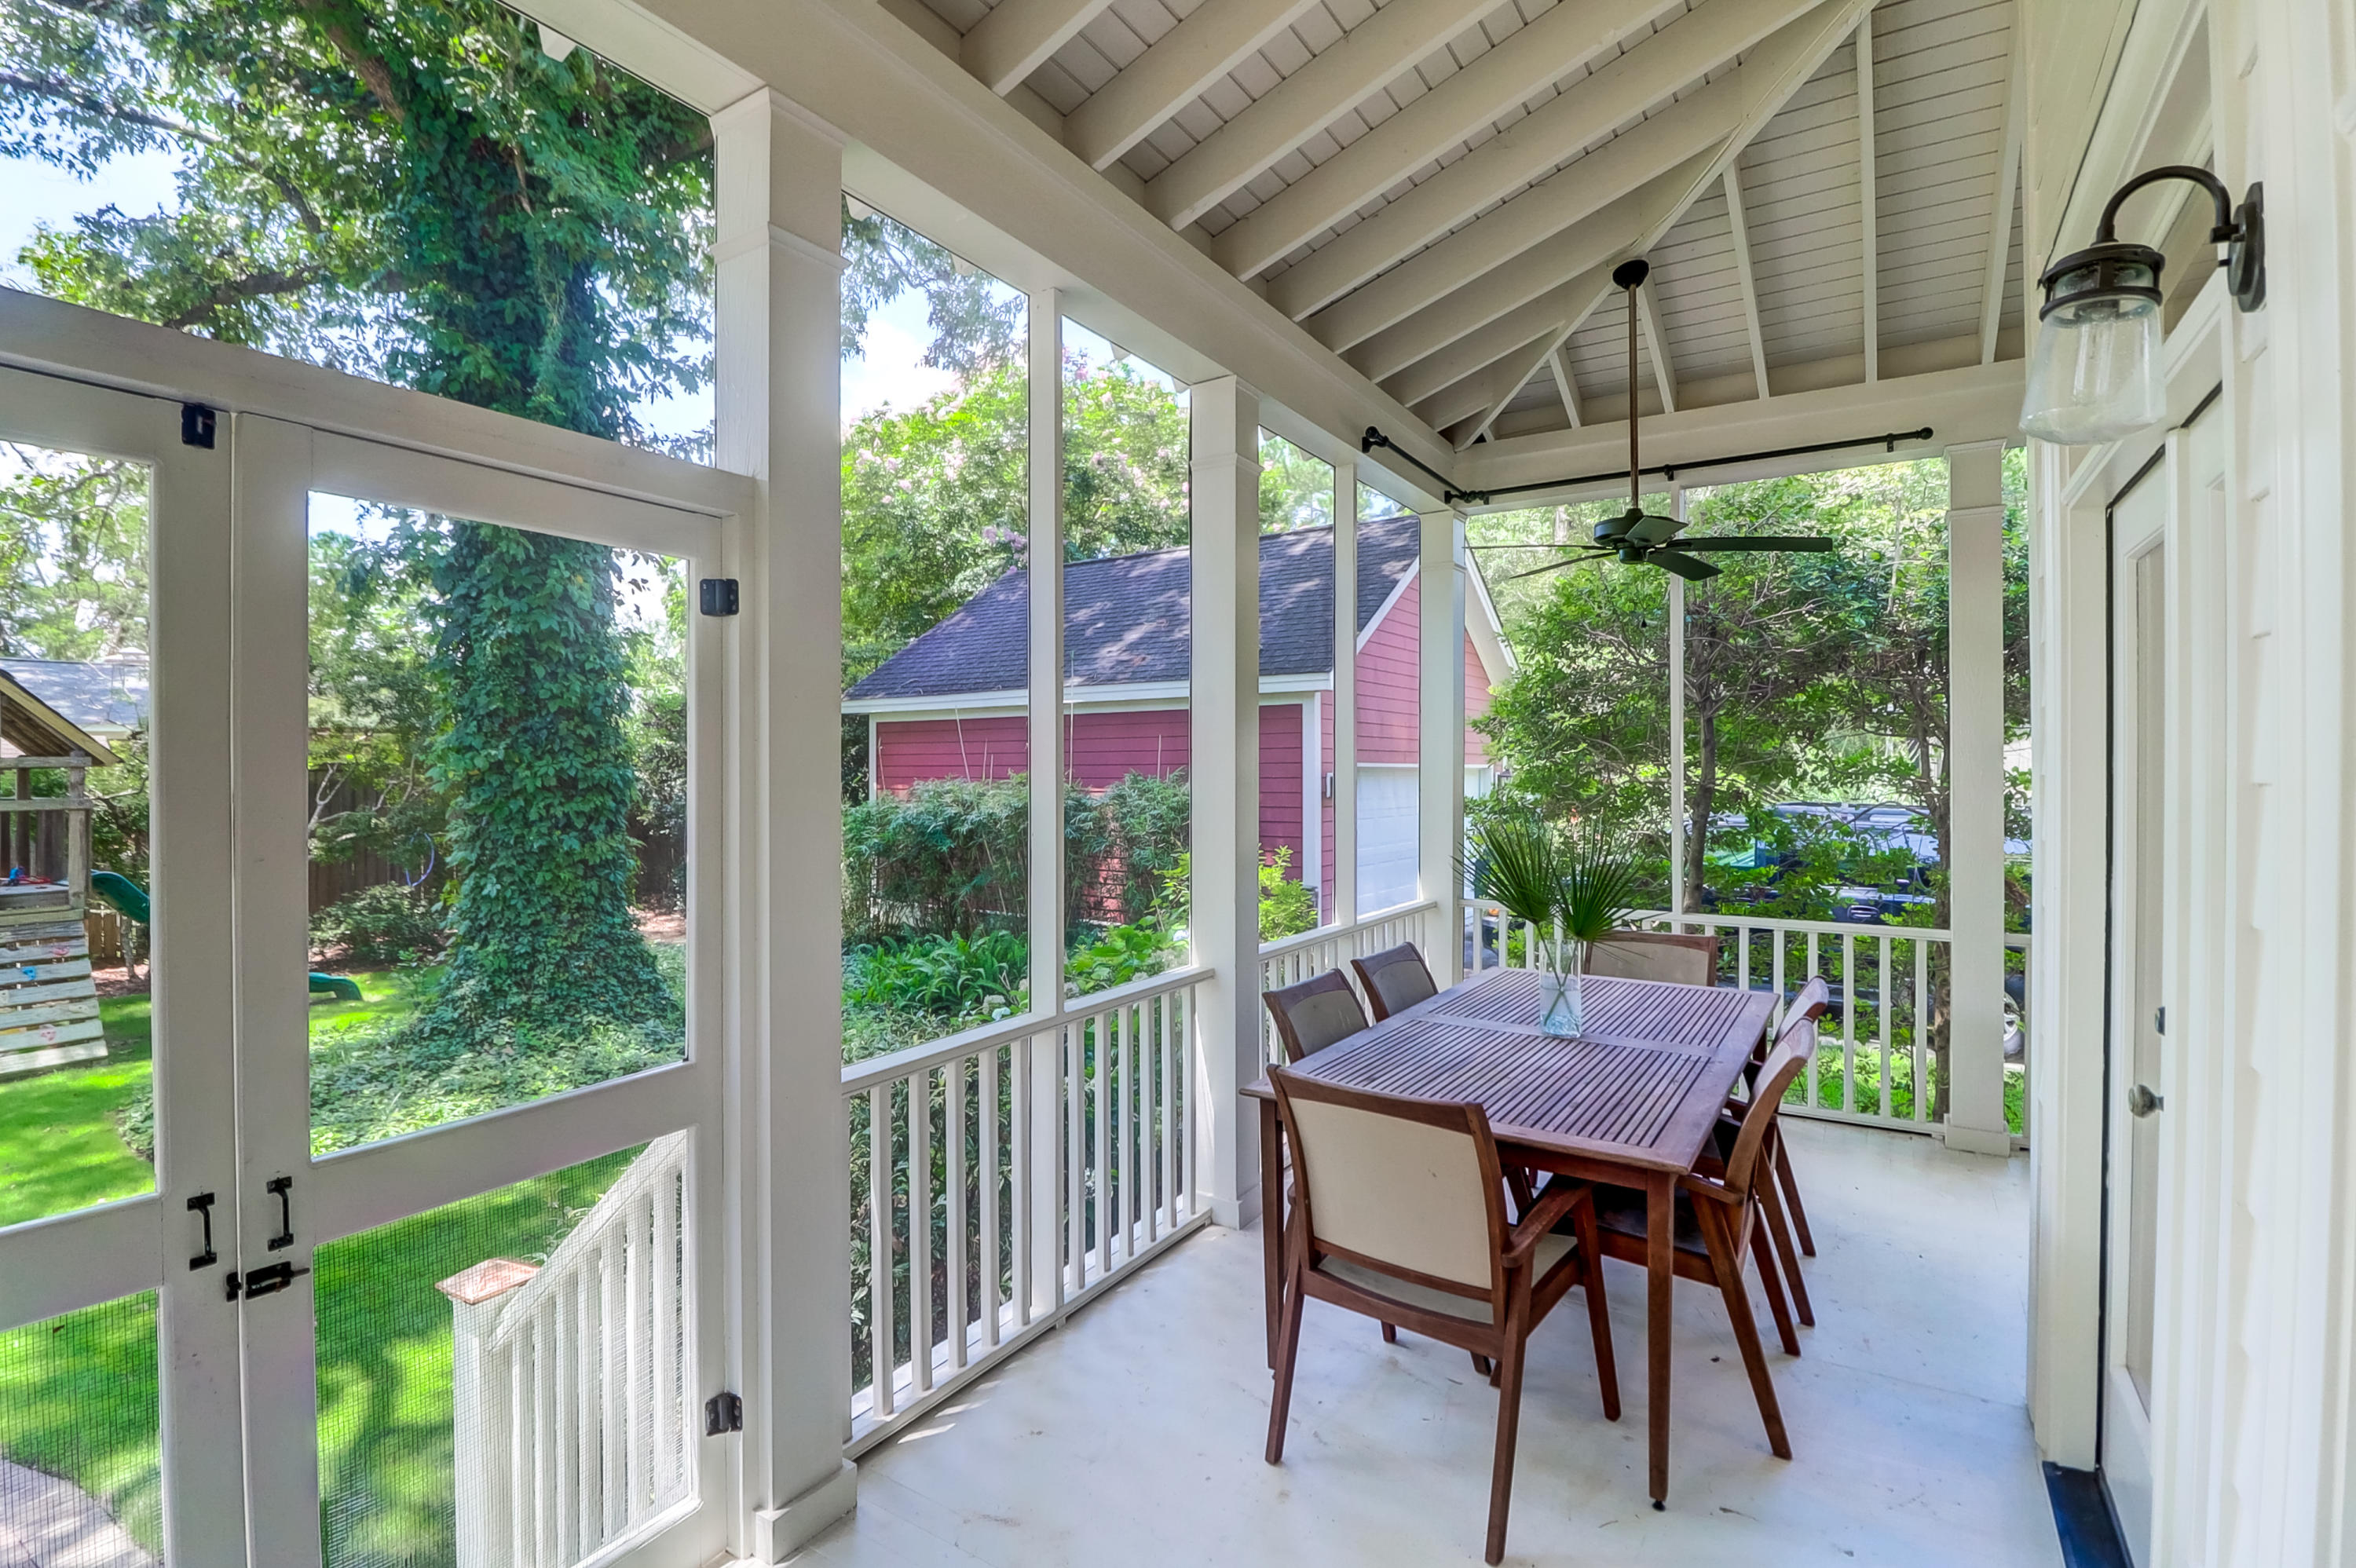 The Villages In St Johns Woods Homes For Sale - 5056 Coral Reef Dr, Johns Island, SC - 55